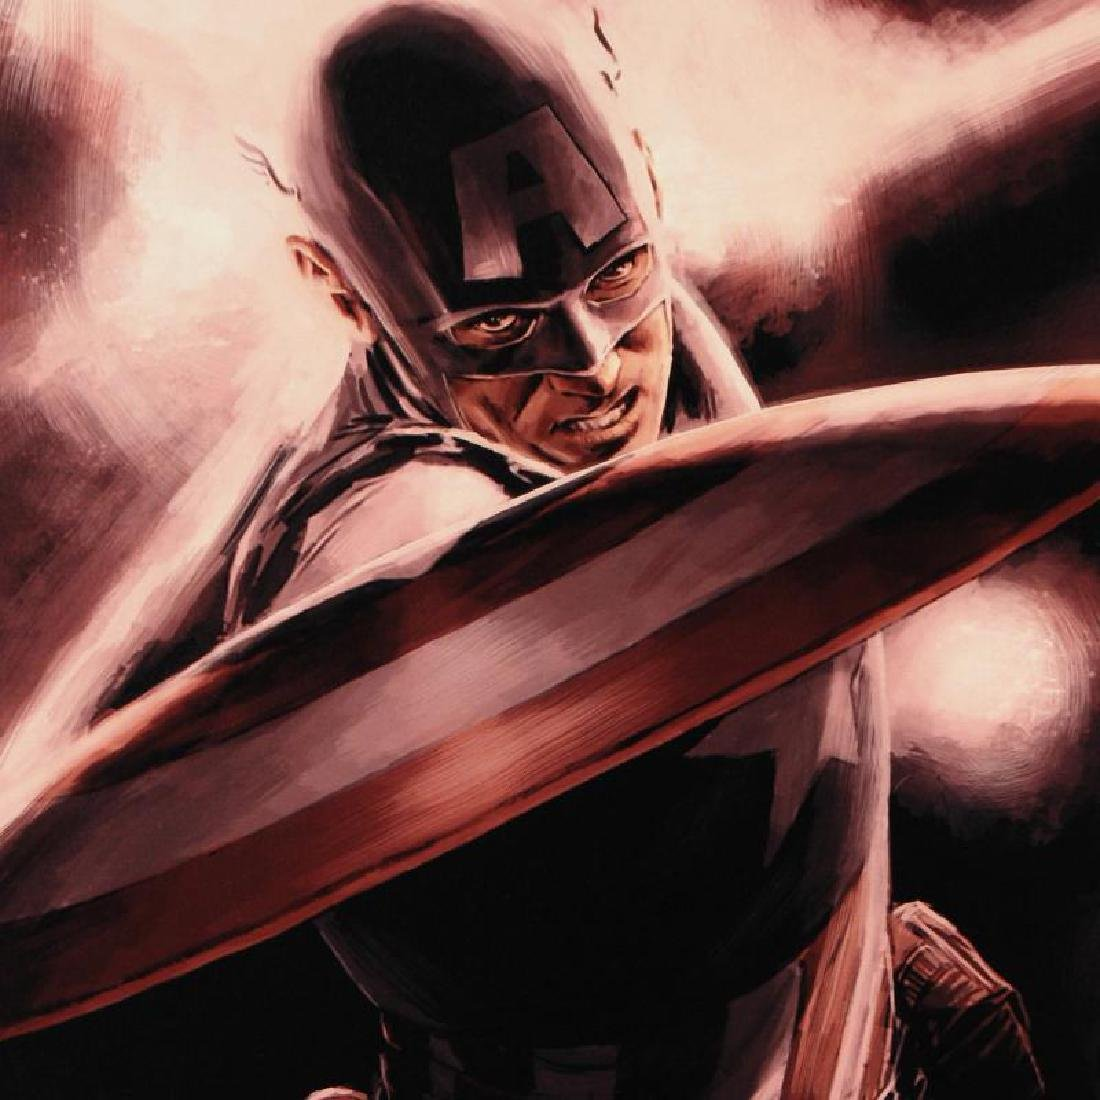 Captain America Theater of War: A Brother in Arms #1 by - 2